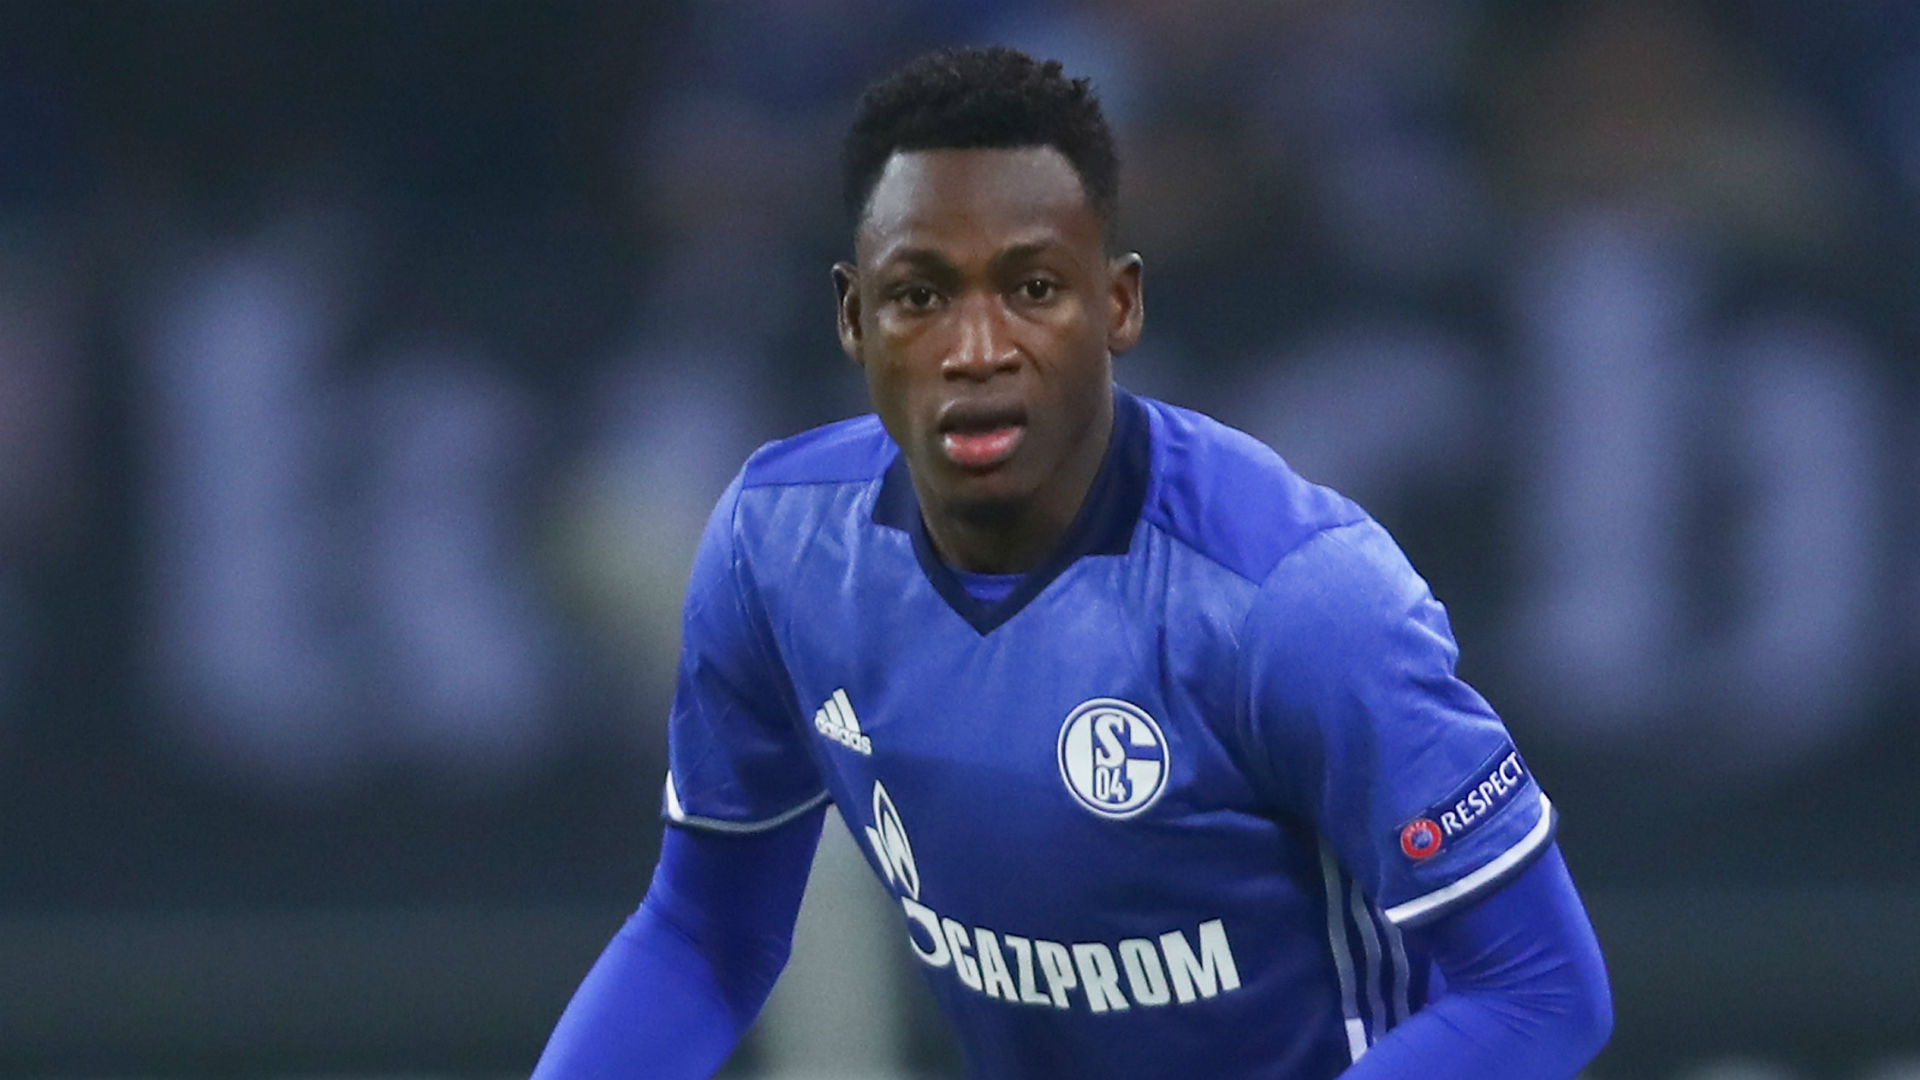 Schalke 04's Baba Rahman returns to action after 16 months out